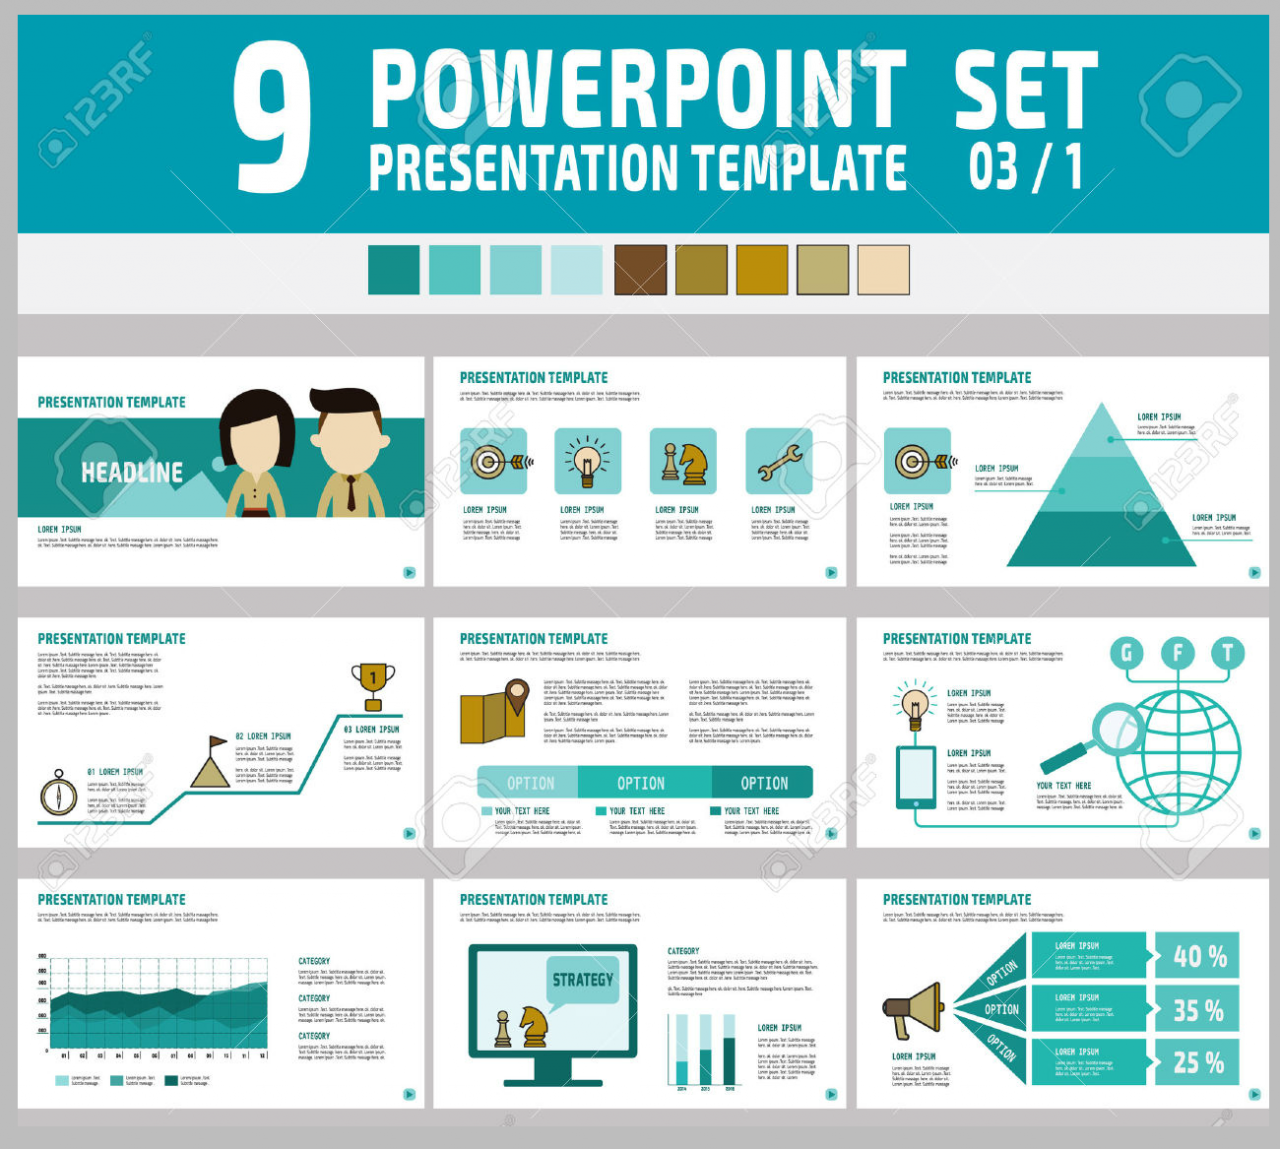 Free Energy Powerpoint Templates: 10 Labor Day PowerPoint Templates